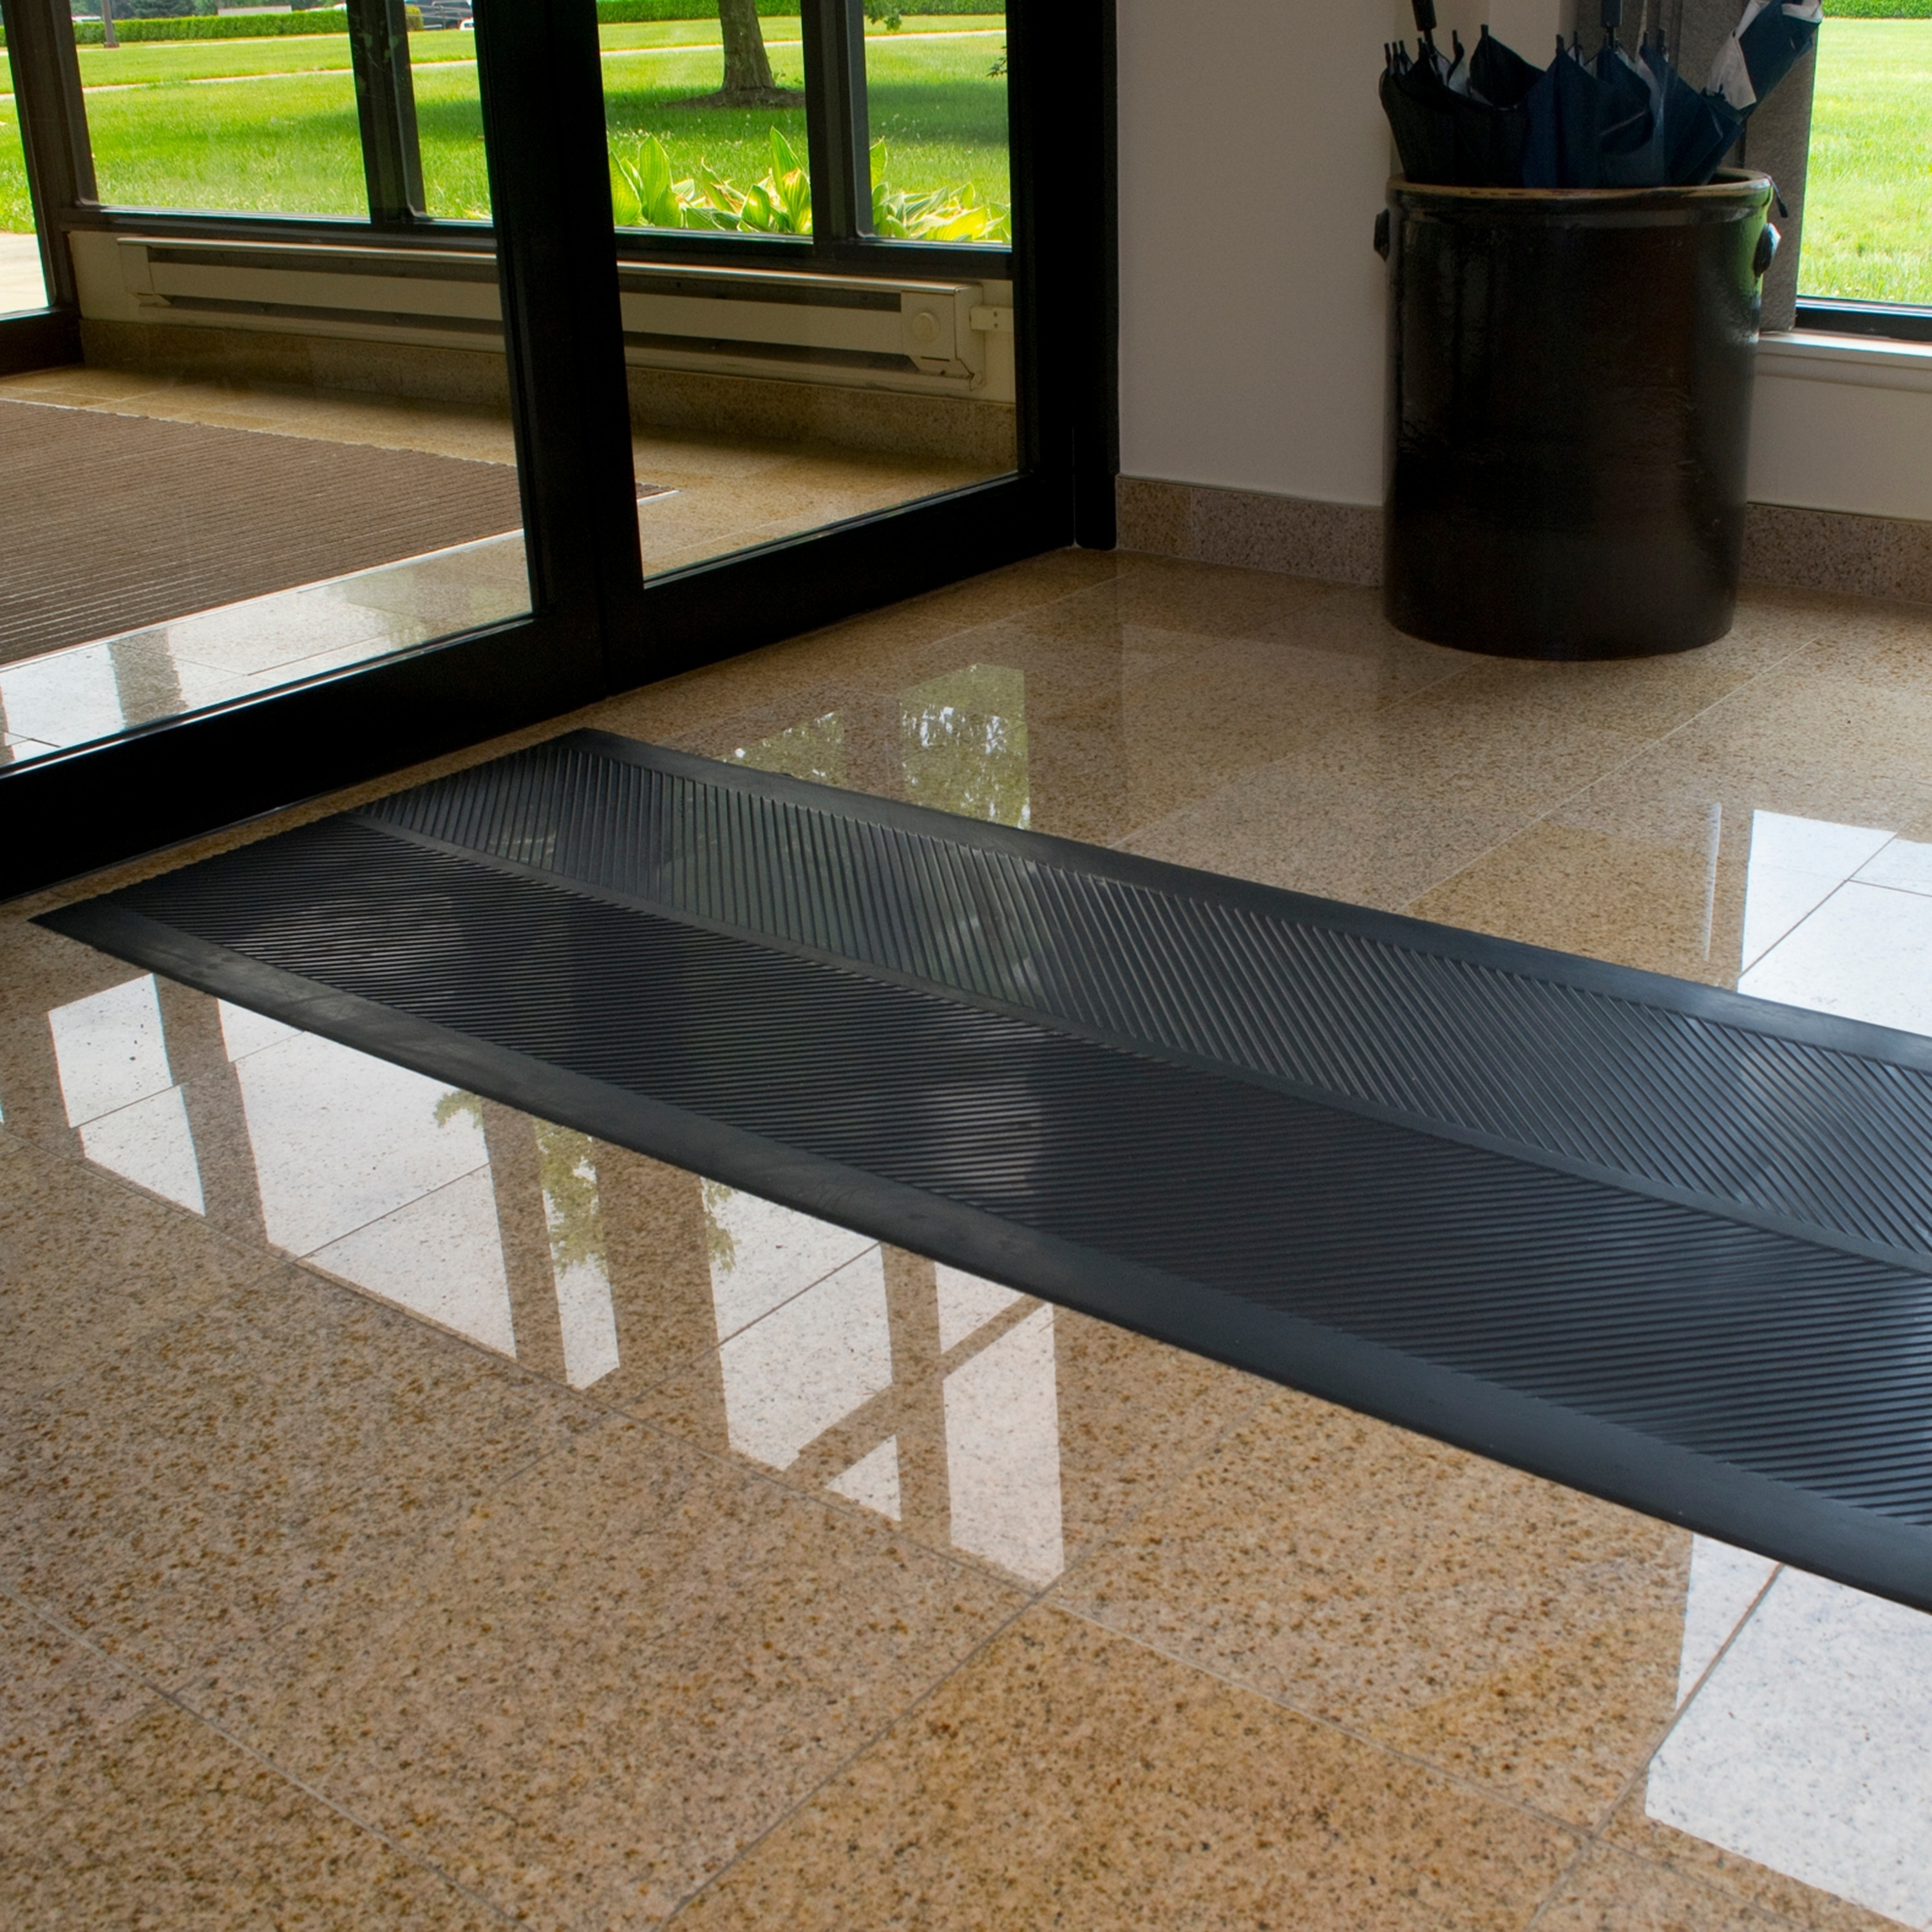 Dimex Climatex 27 X 6 Indoor Outdoor Rubber Runner Mat Black Free Shipping On Orders Over 45 17025532